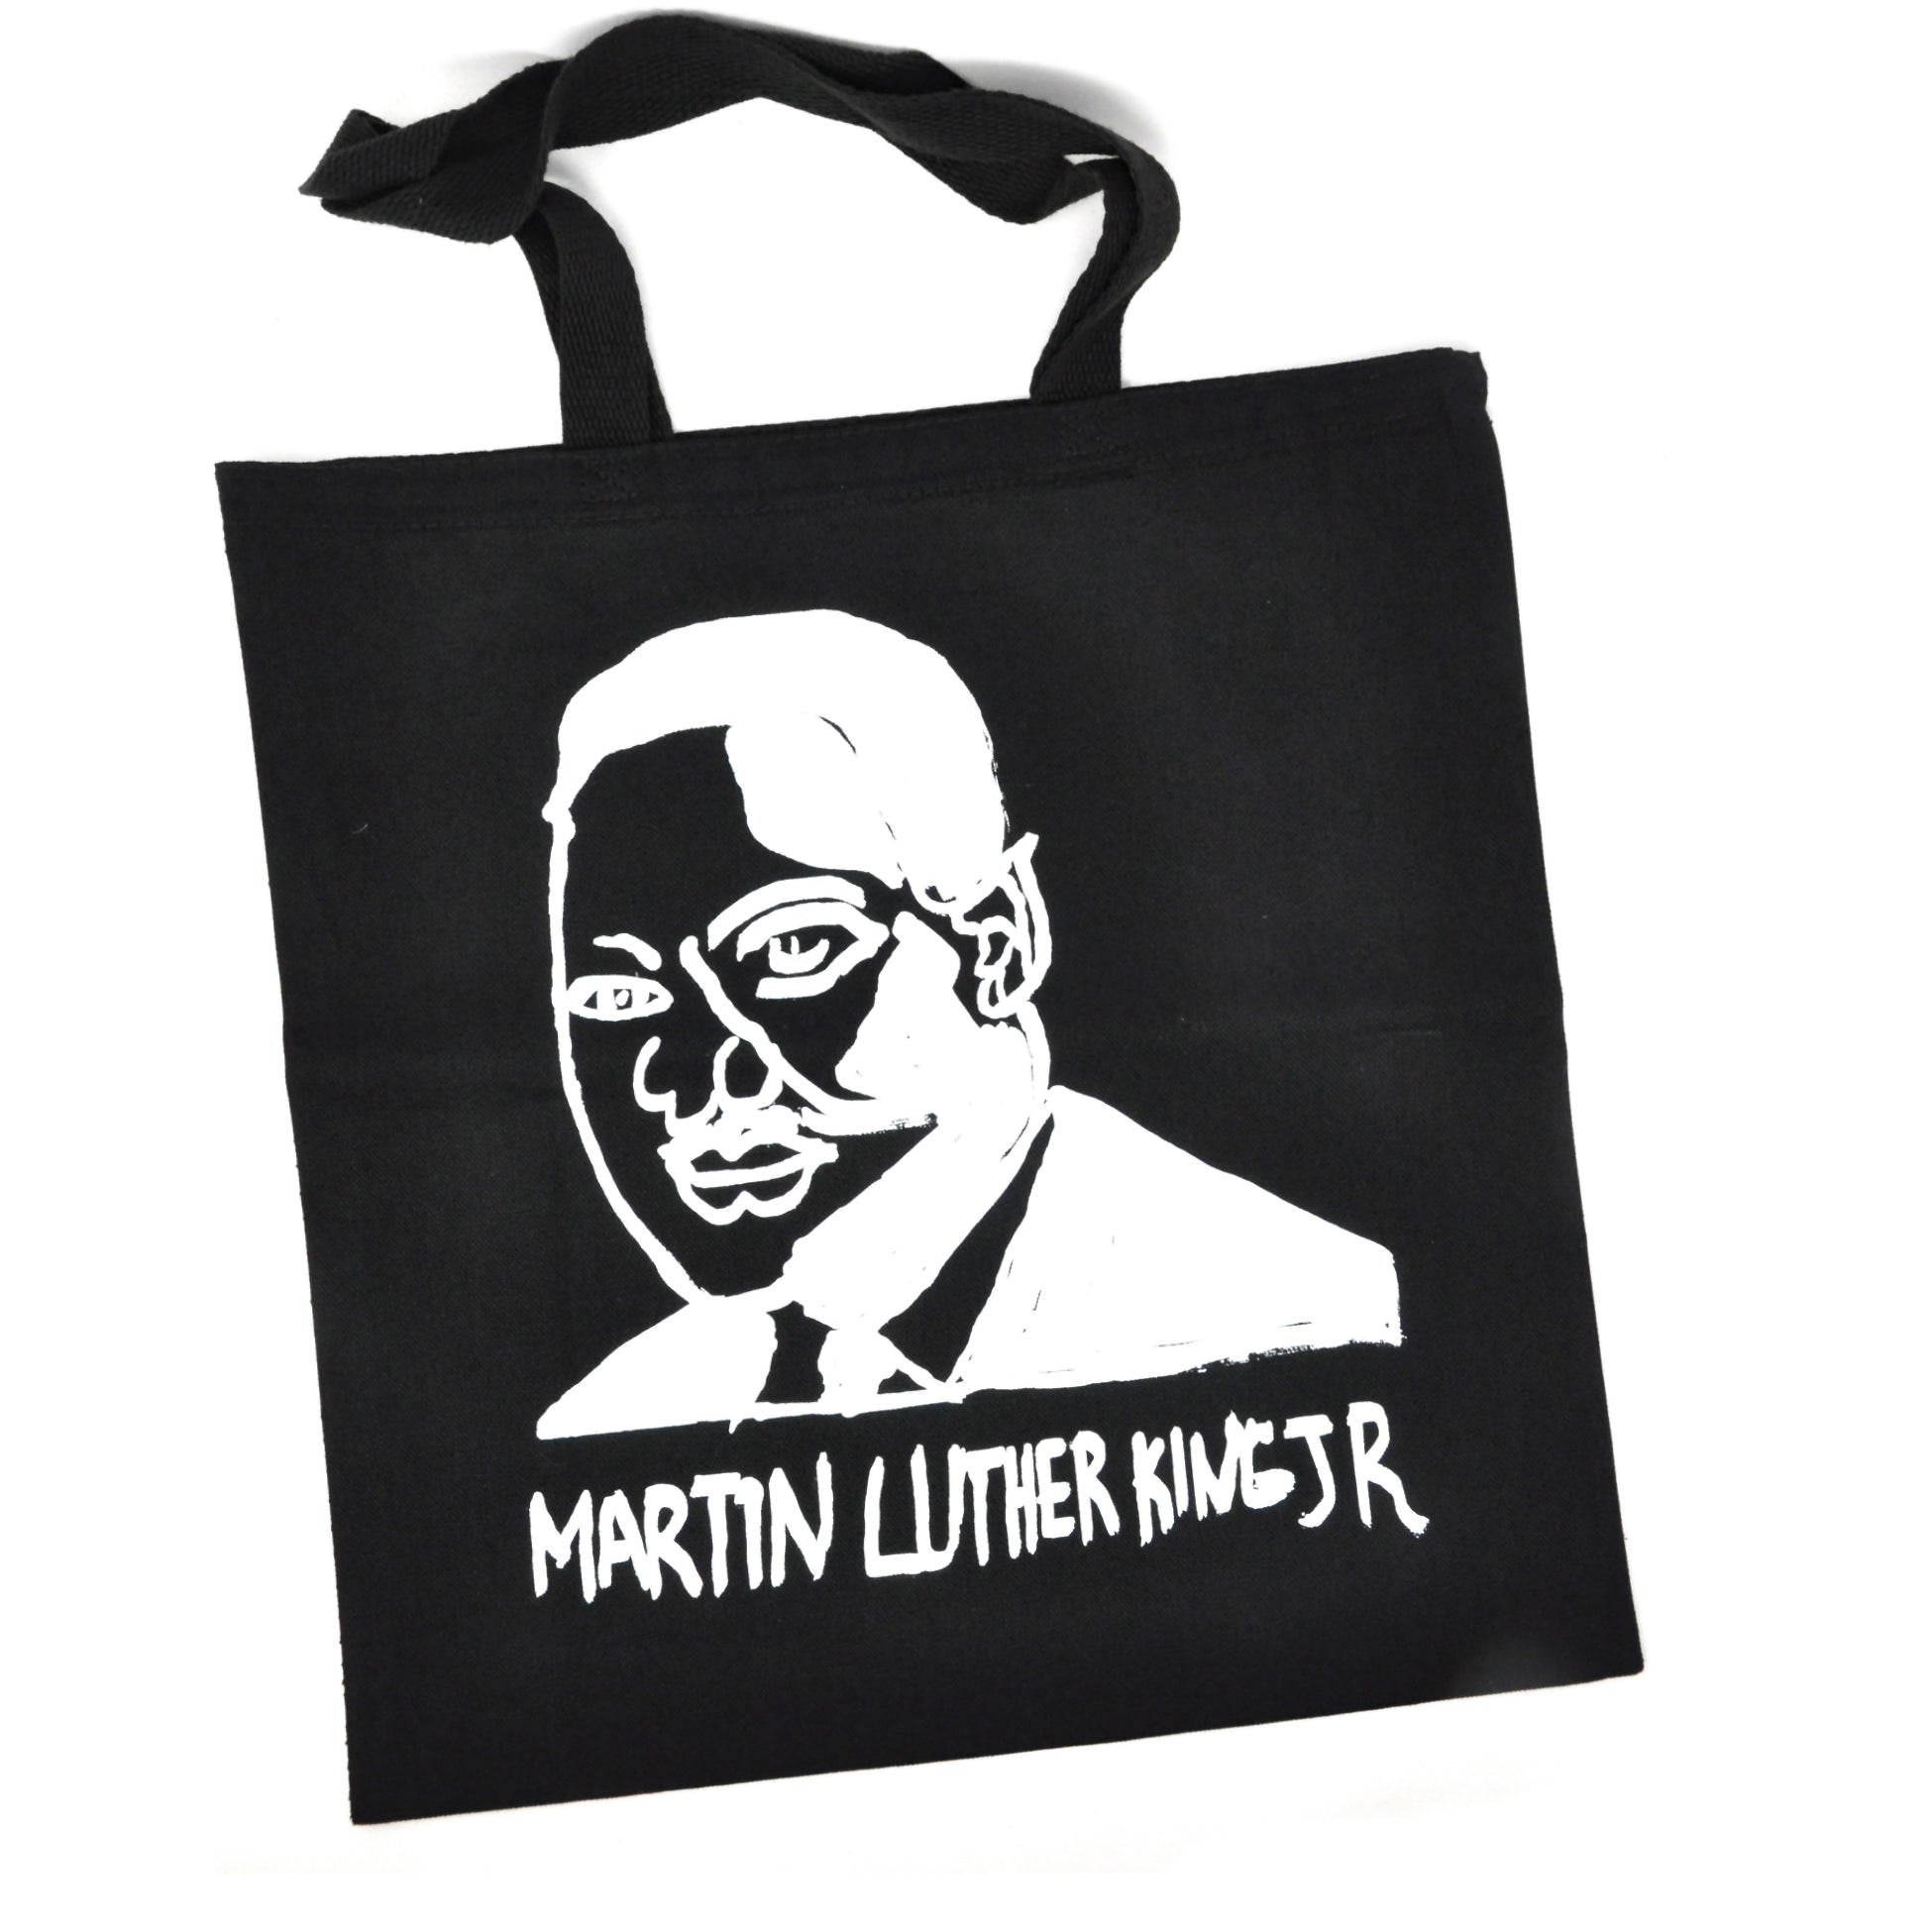 Tote bag: Martin Luther King Jr. (White on Black)